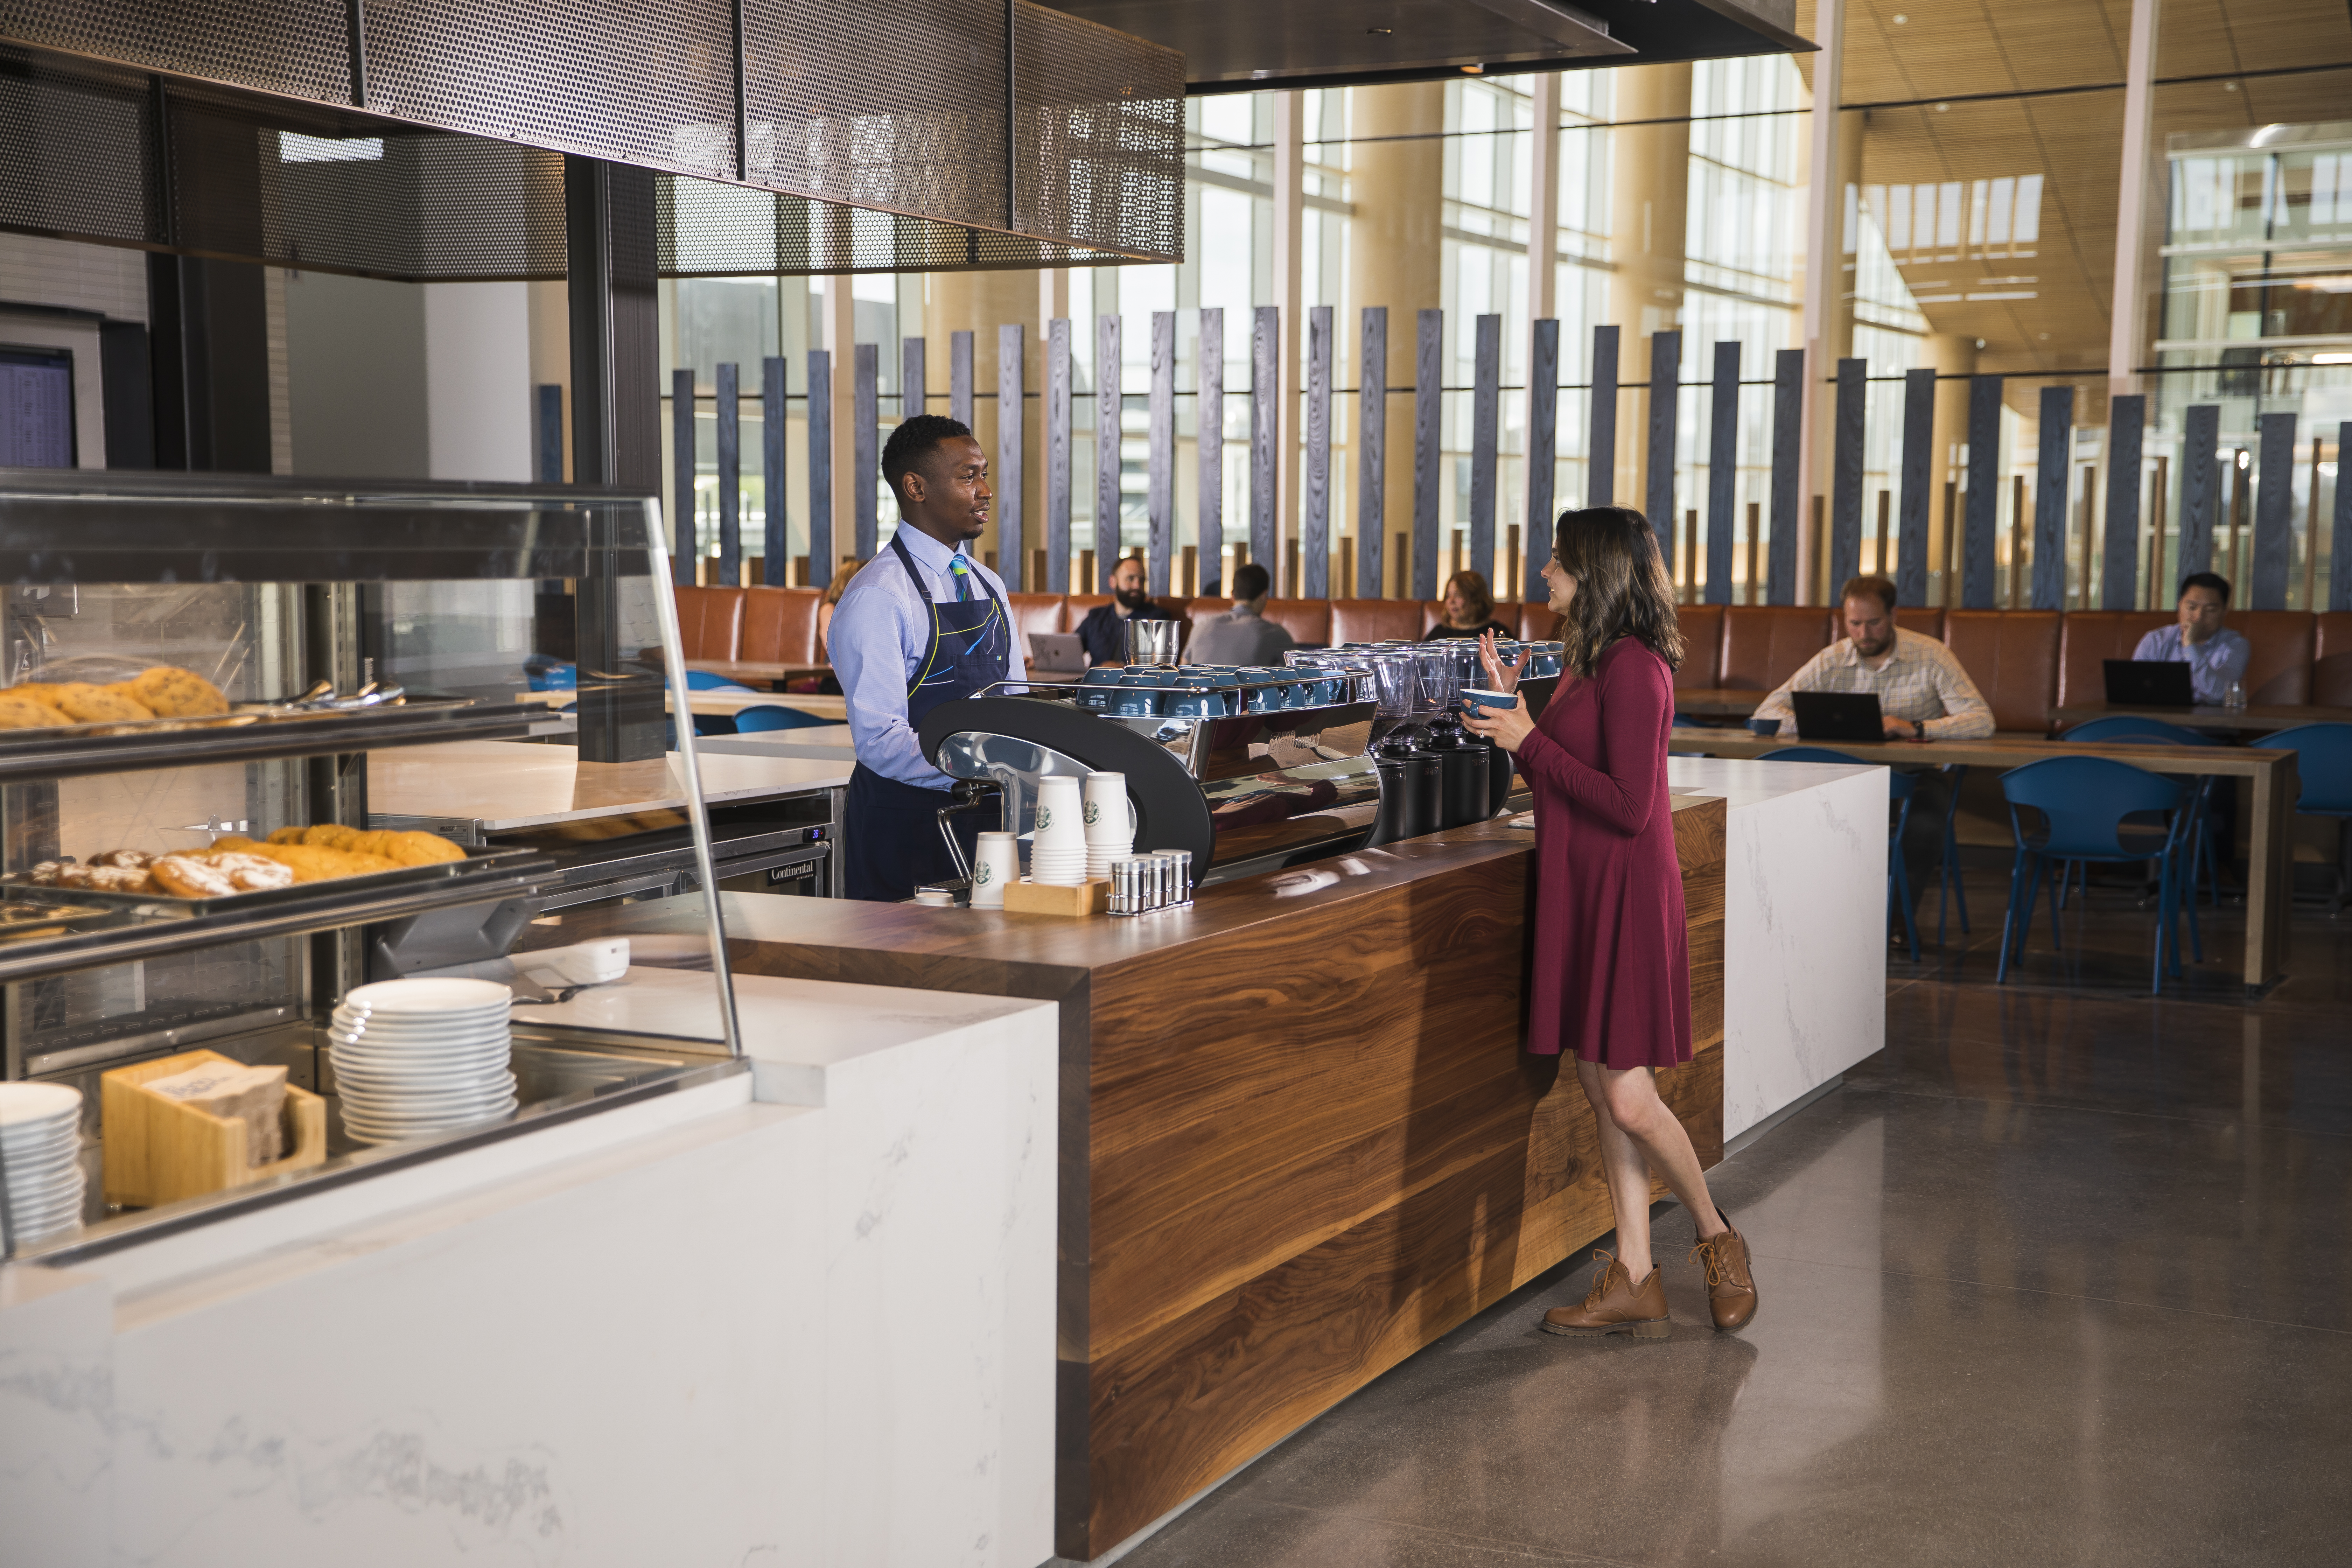 "A brand new Alaska Airlines lounge was just unveiled as part of Sea-Tac Airport and Port of Seattle's new North Satellite Modernization Project - and BOY is it a stunner. The $658.3 million project consists of eight new gates, expanded local dining, retail options, and this brand-spankin-new flagship Alaska Airlines Lounge. The 255,000 square-foot expansion replaces the old North Satellite, which worked for 45 years but had become ""a living time capsule"". Fliers will see Bambuza Vietnam Kitchen, Skillet, Caffe D'Arte, The New Stand, a brand new Nursing Suite. (Image: Ingrid Barrentine / Alaska Airlines){ }"